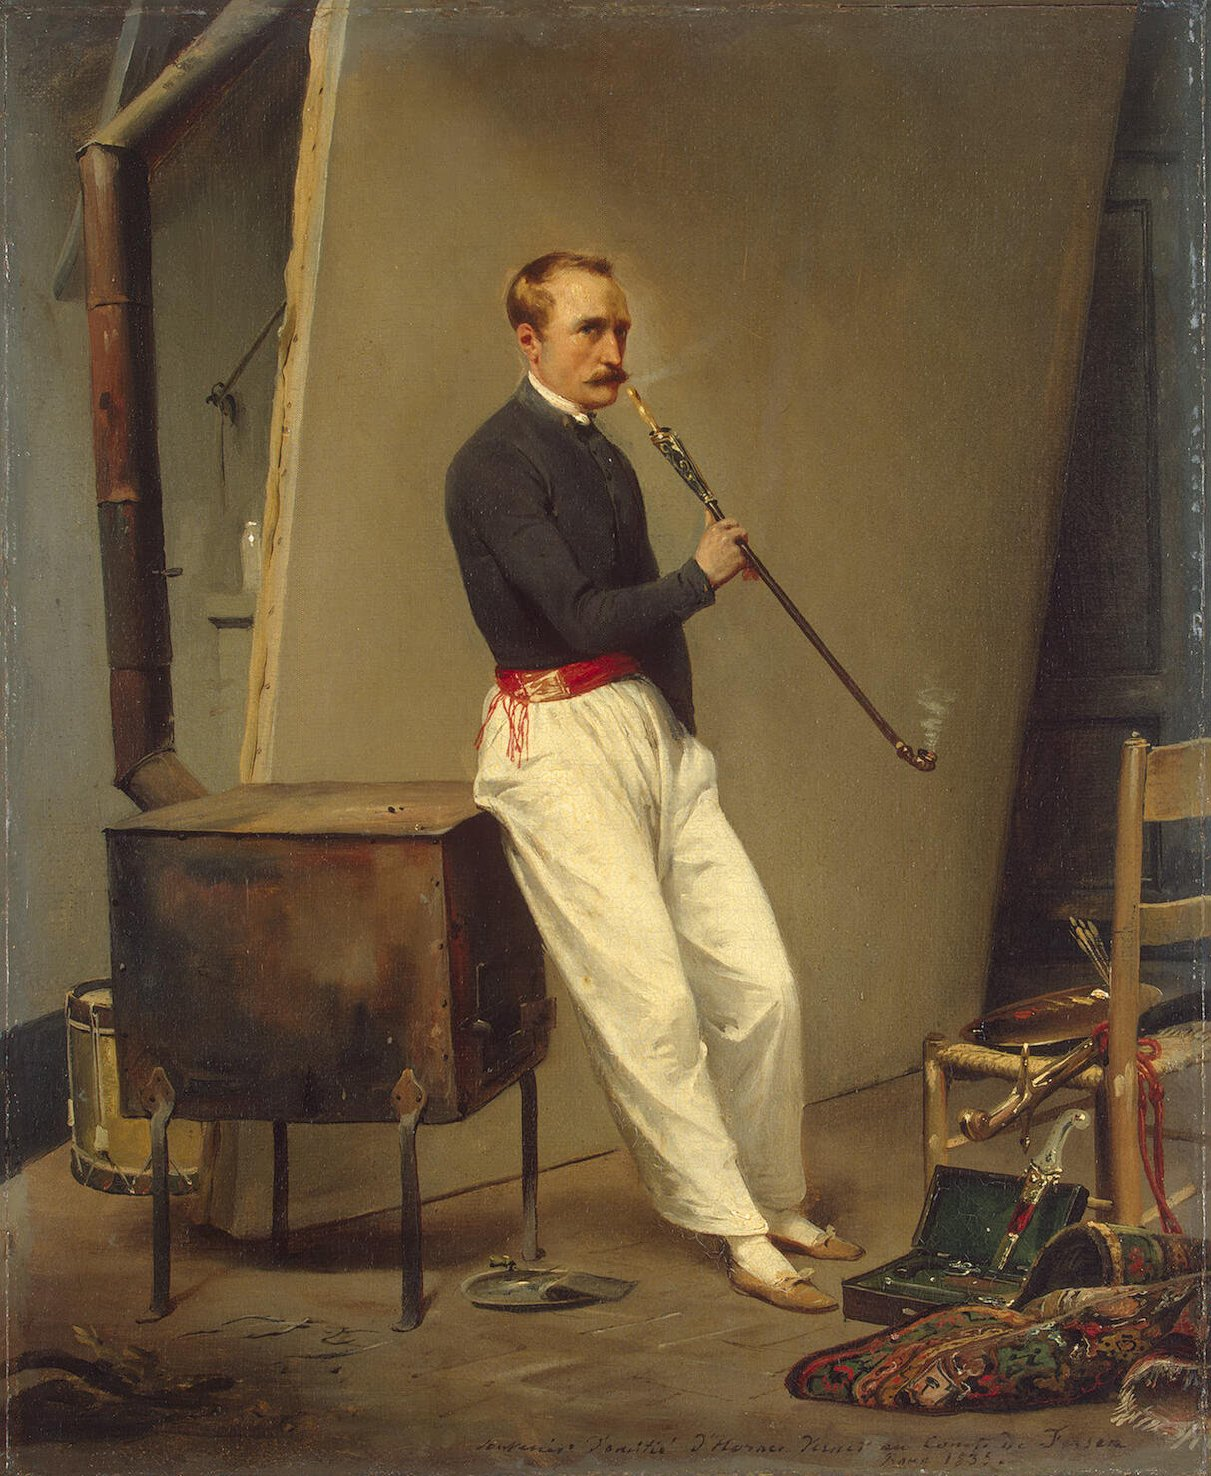 Image of Horace Vernet from Wikidata